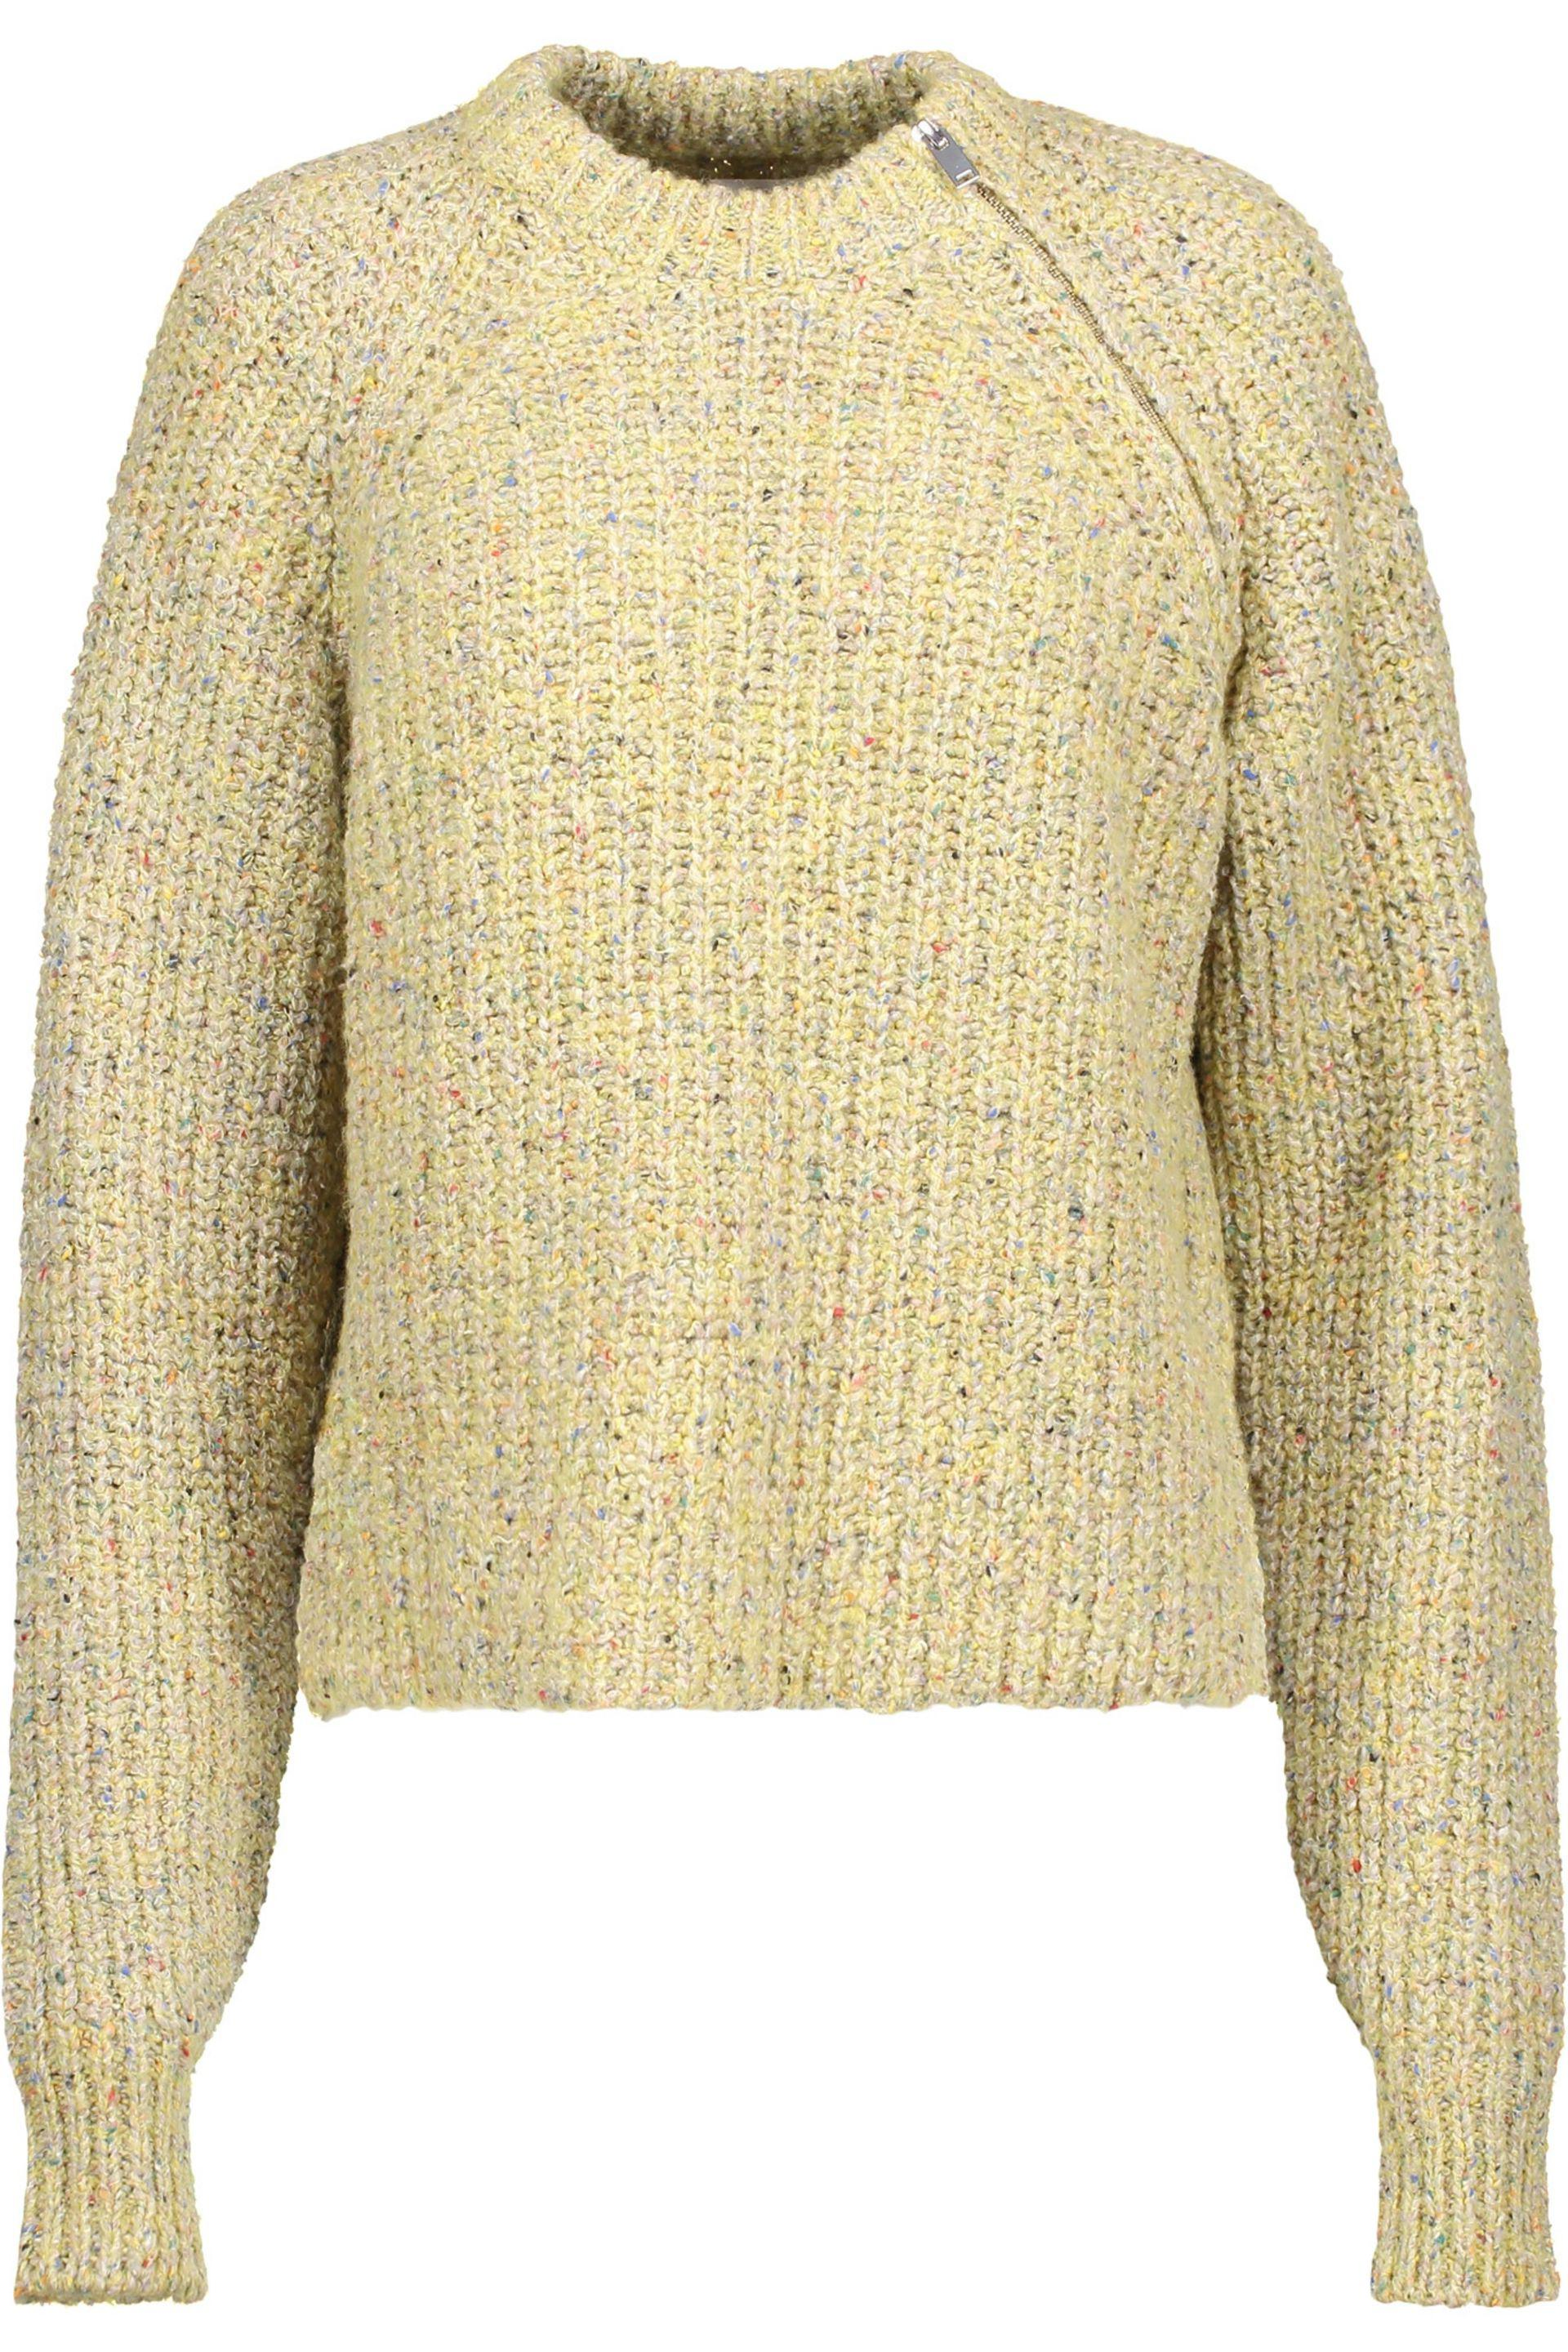 92186aabefe Lyst - Étoile Isabel Marant Happy Ribbed-knit Sweater